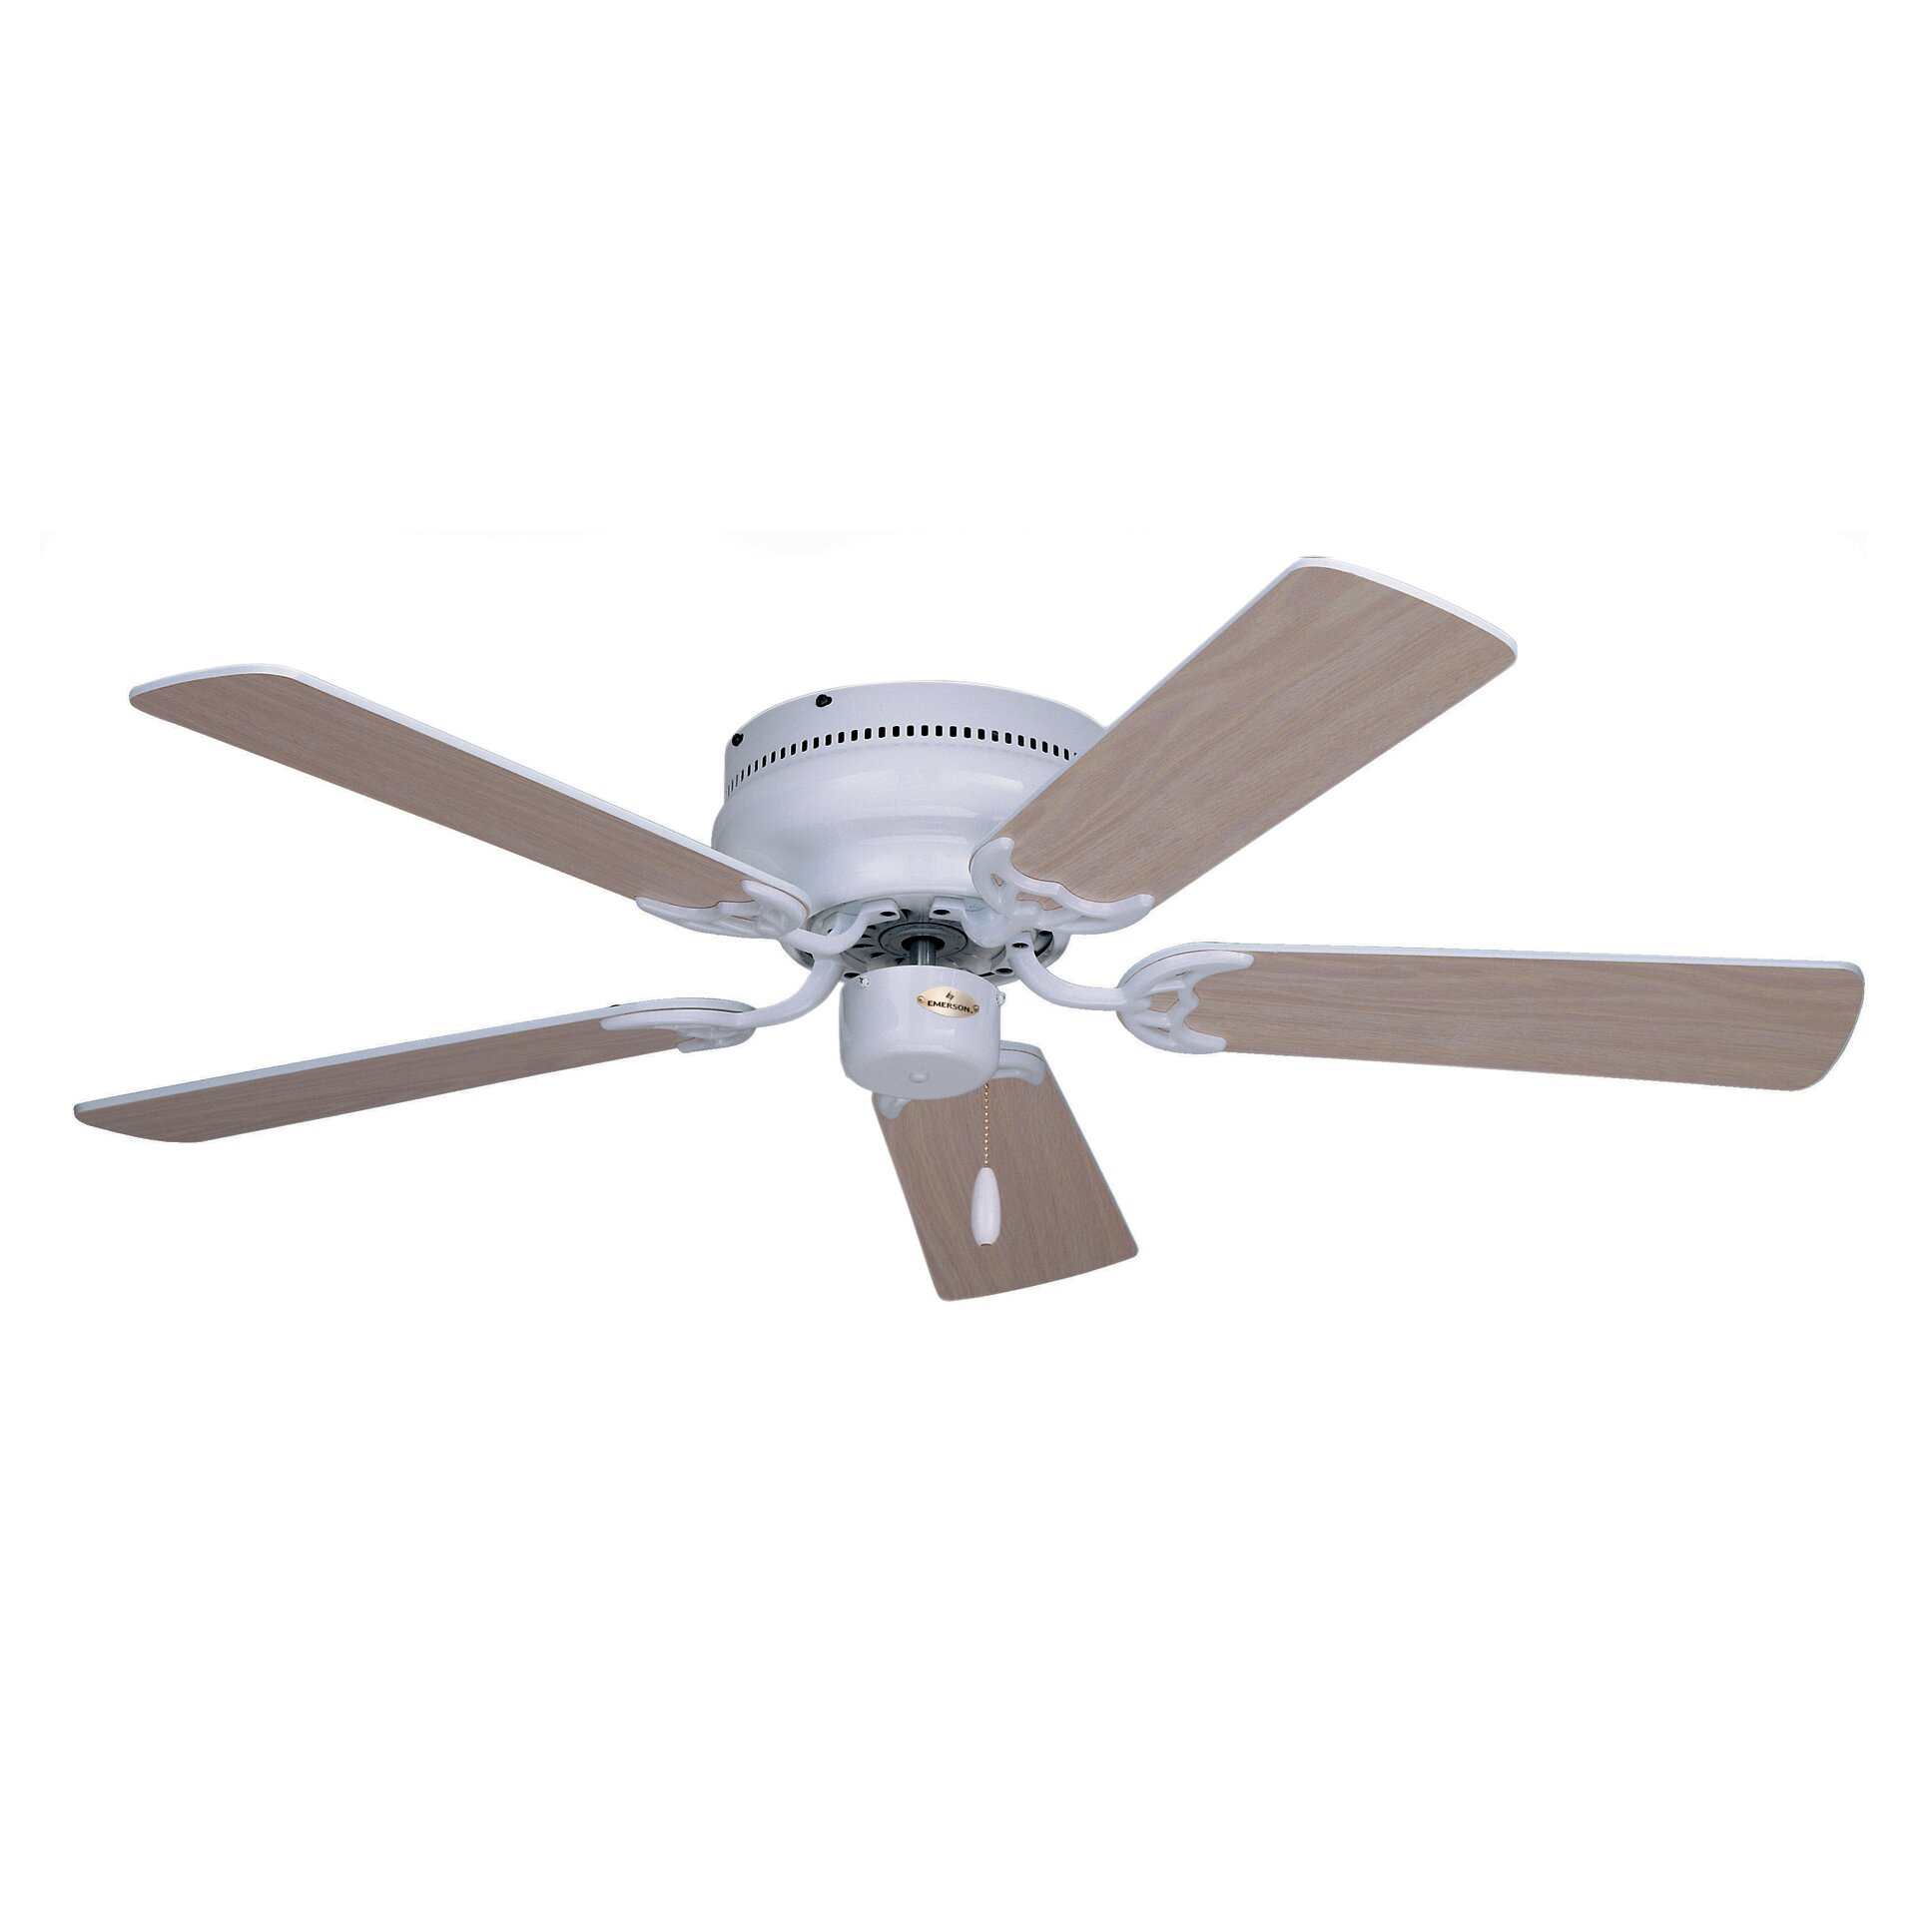 "Emerson Fans 42"" Contemporary Snugger 5 Blade Ceiling Fan"